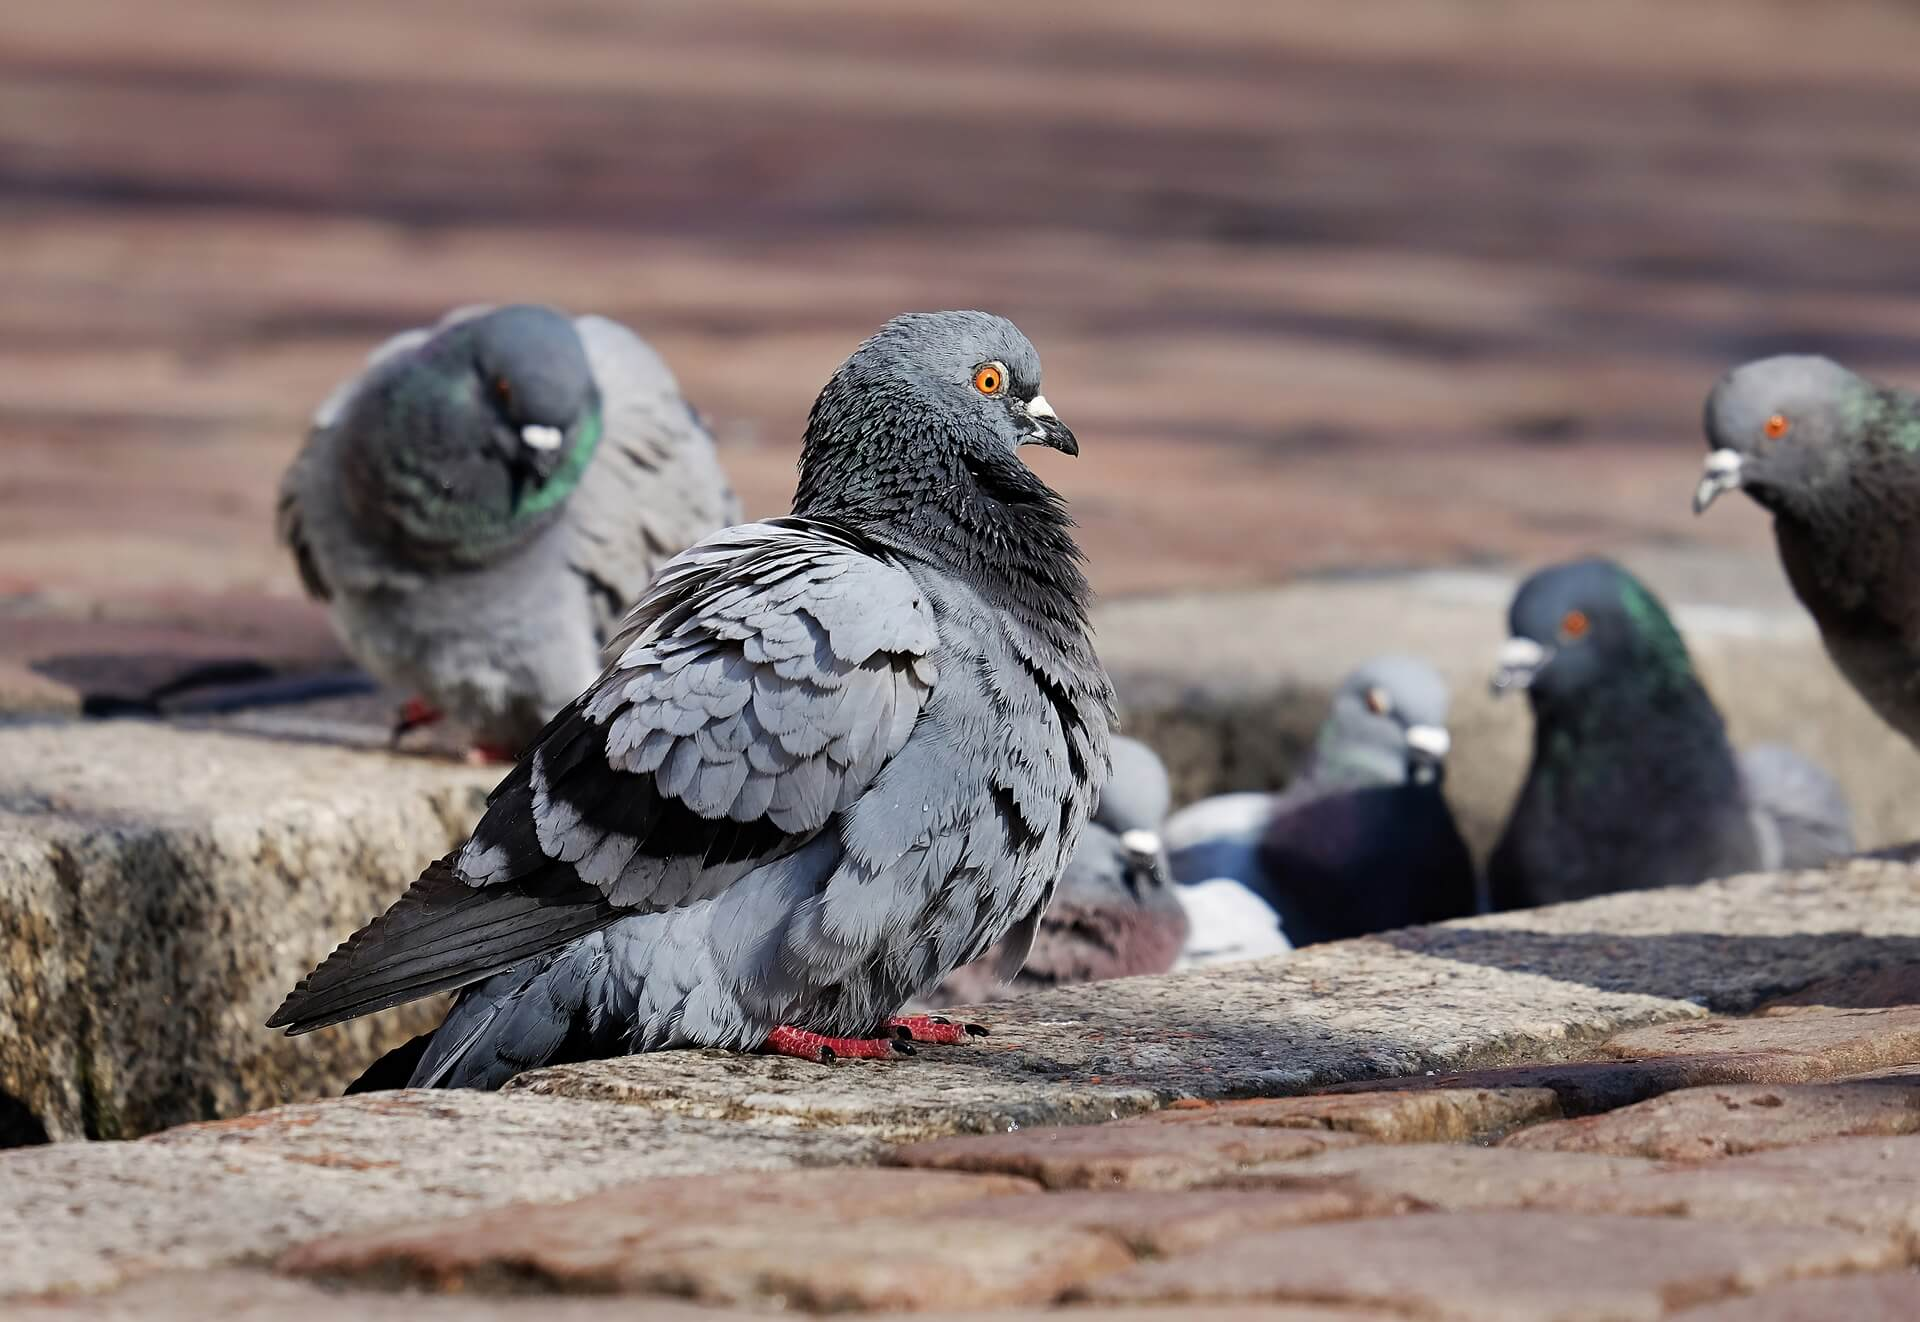 Pigeons: They're No Spring Chicken!